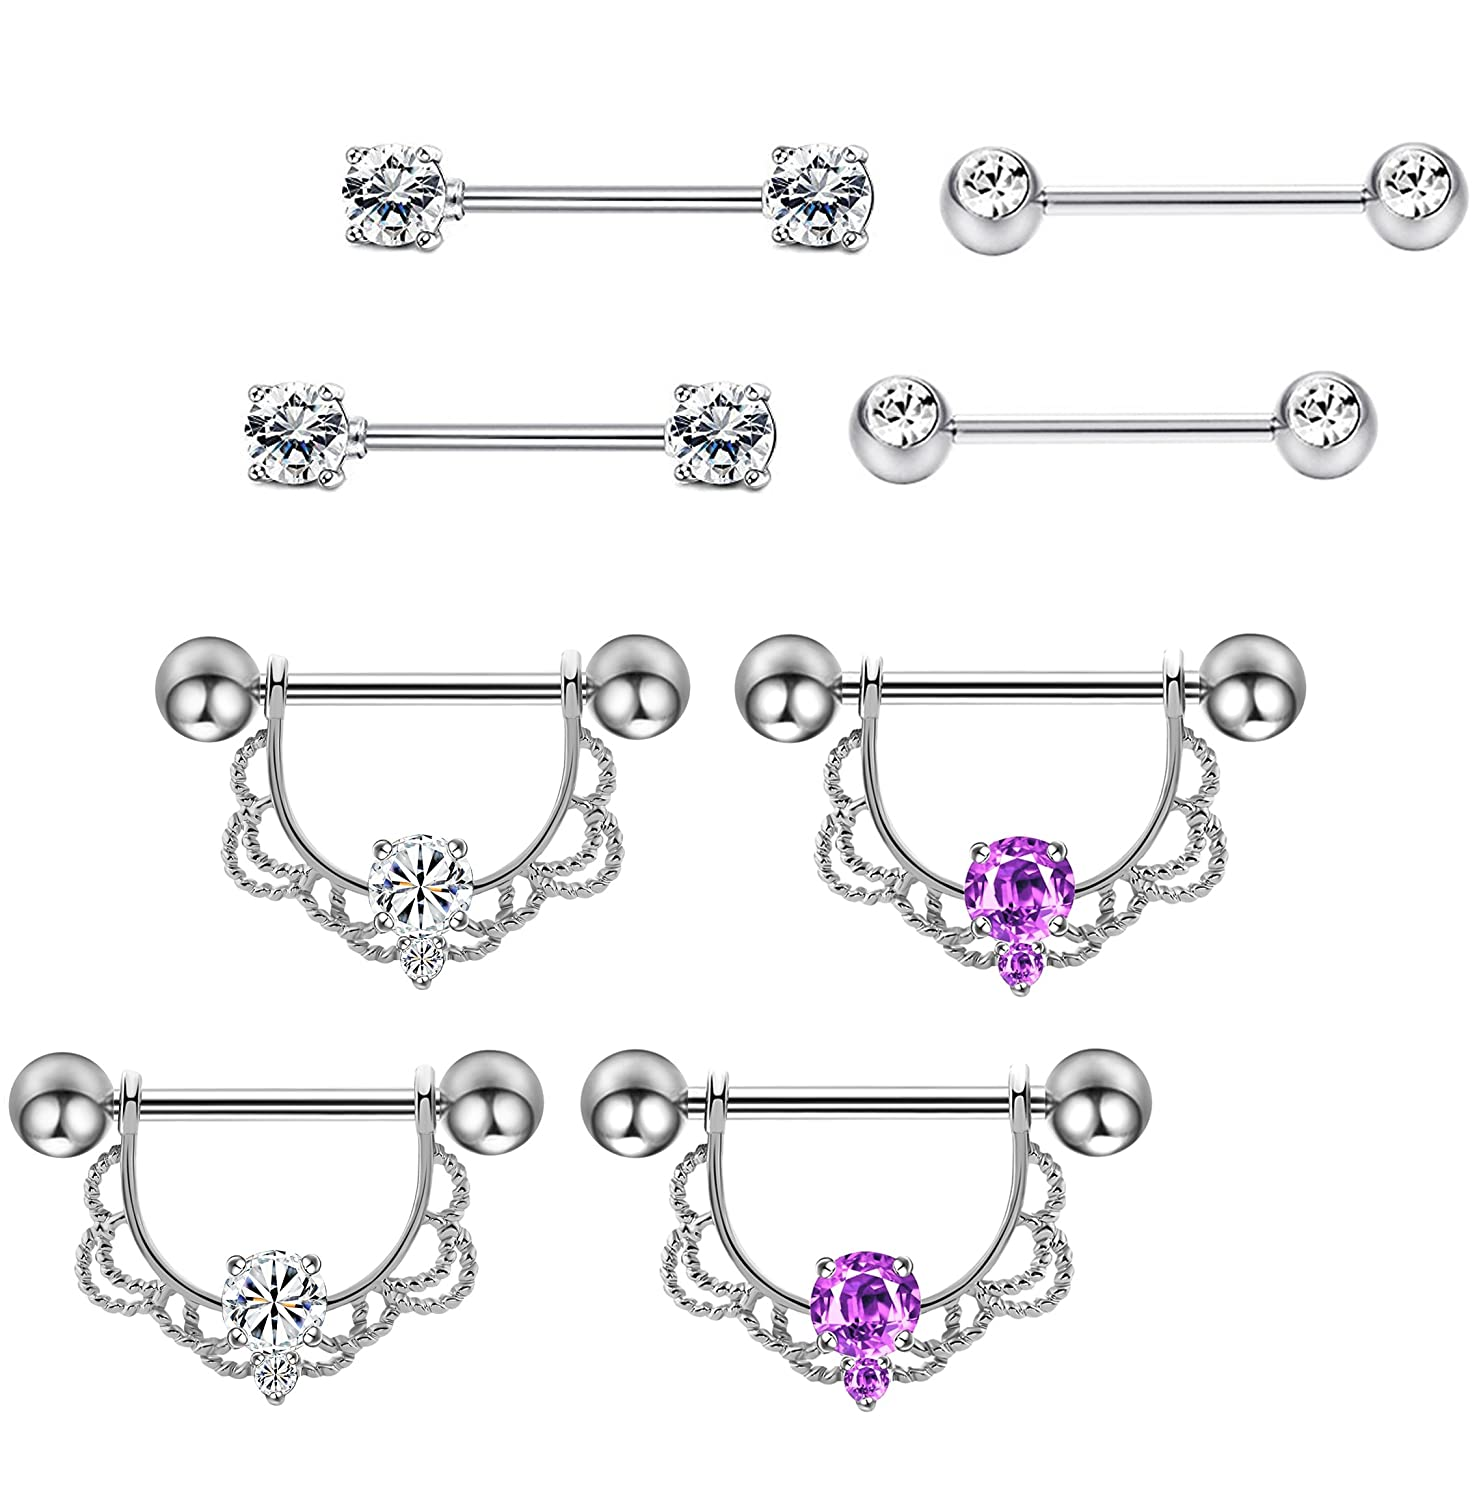 Masedy 2-4 Pairs 14G 316L Stainless Steel Nipplerings Nipple Tongue Rings Barball CZ Body Piercing Masedy-AP02-Silver